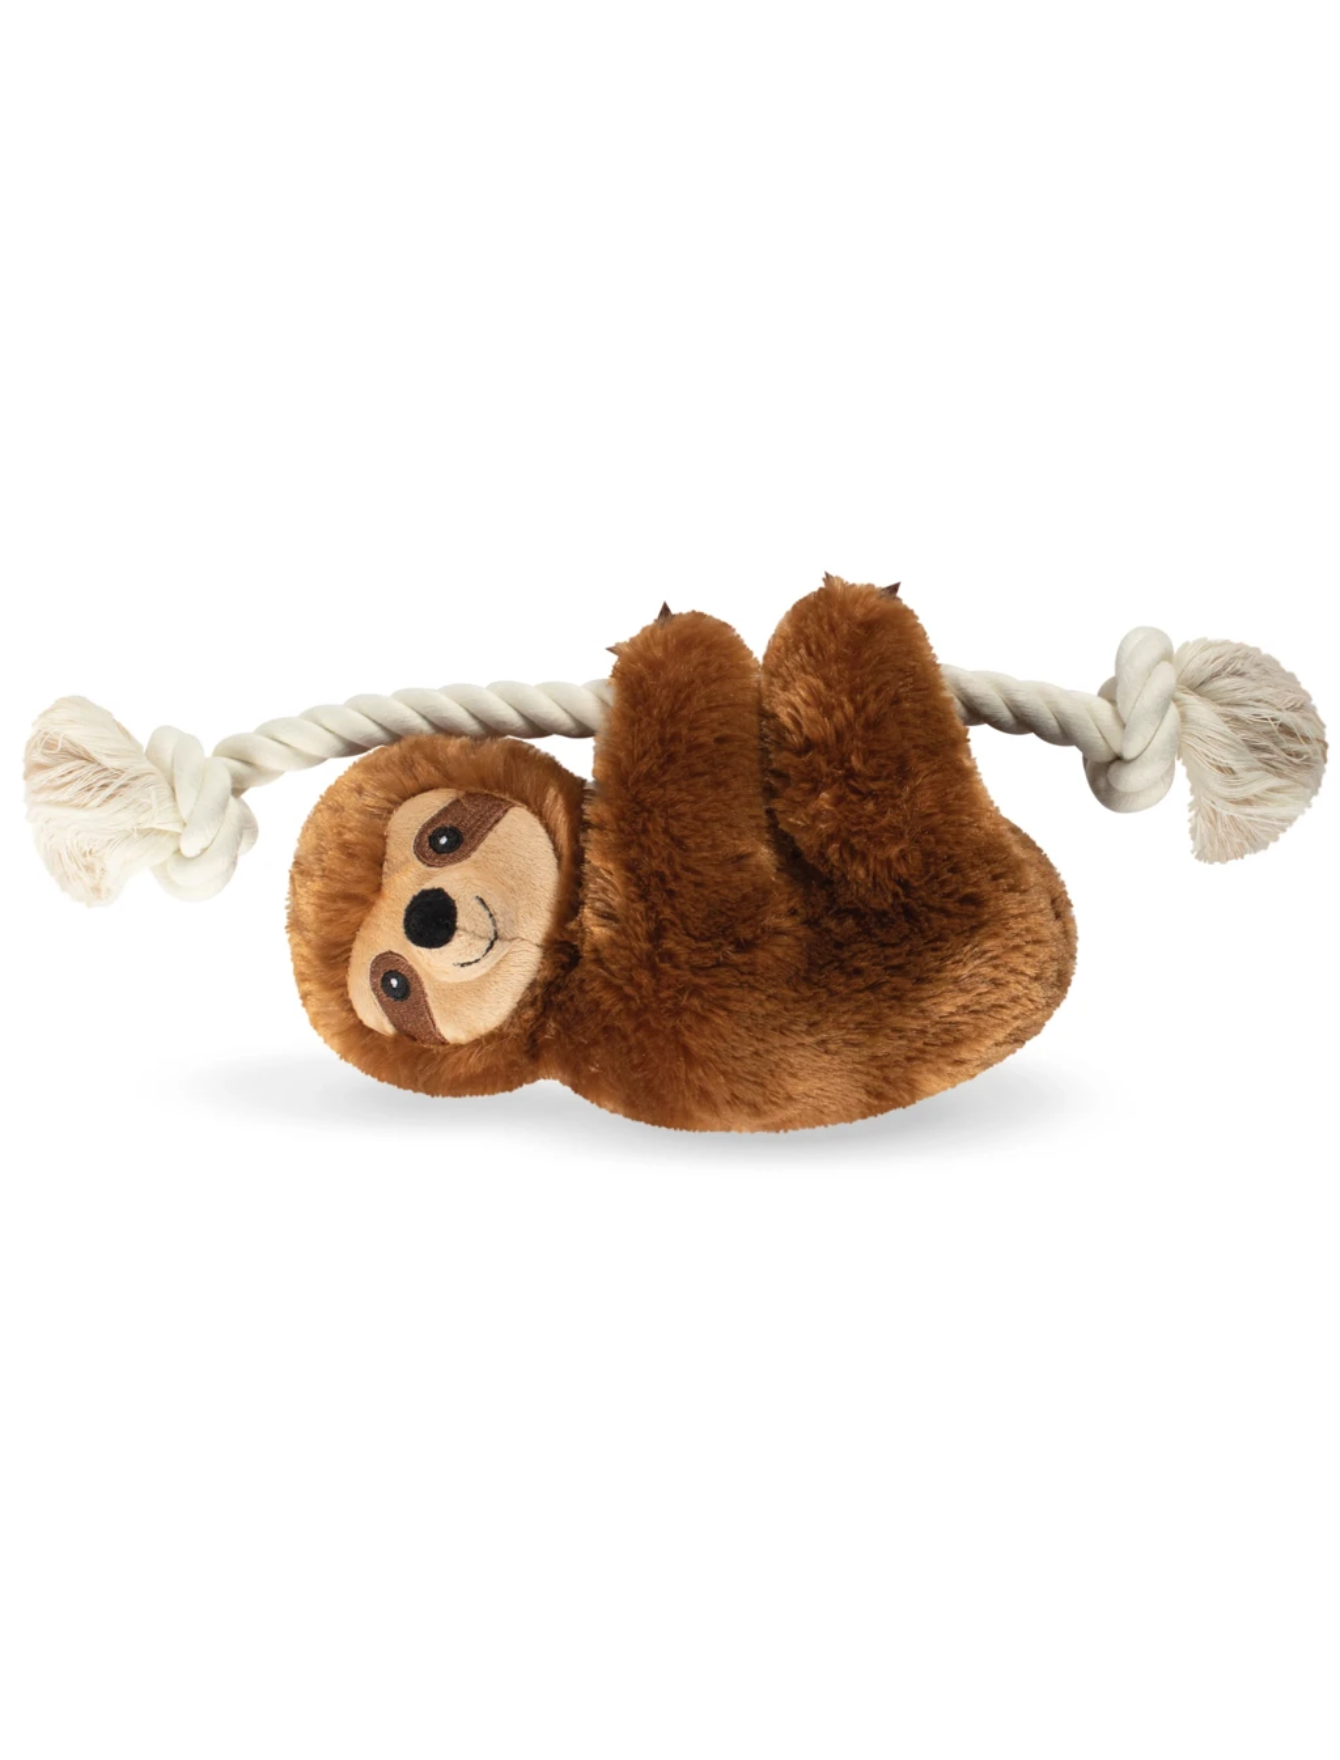 Fringe Studio Stanley Brown Sloth On A Rope Dog Squeaky Plush Toy | Perromart Online Pet Store Singapore